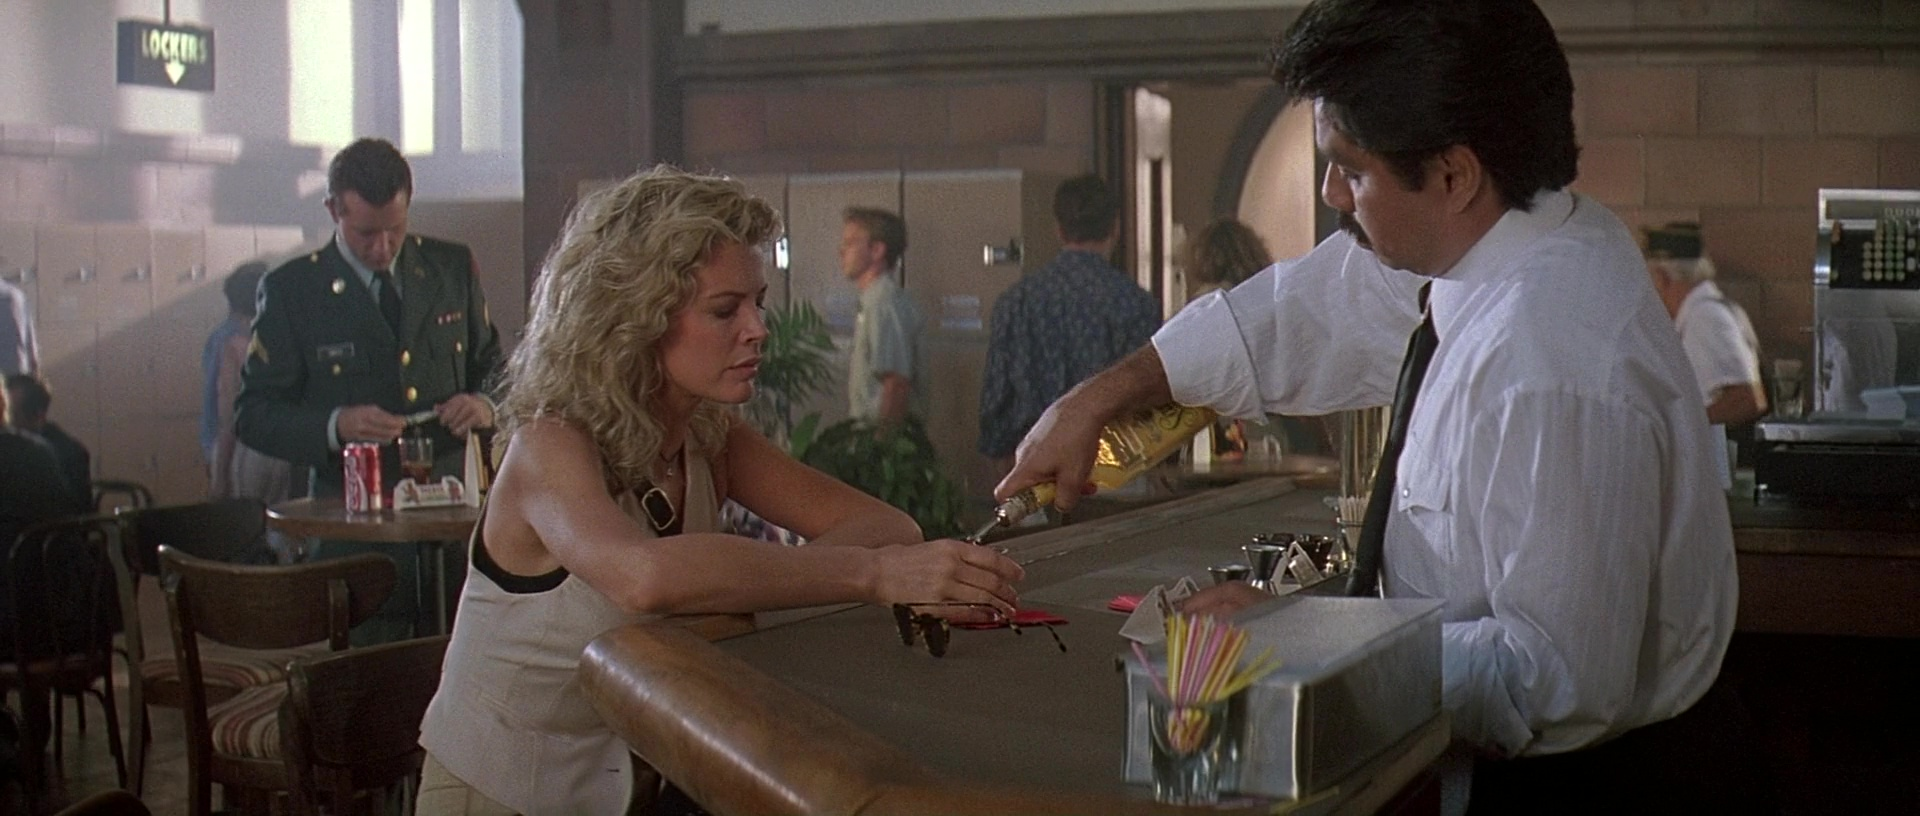 Sauza Tequila and Kim Basinger in The Getaway 1994 Movie